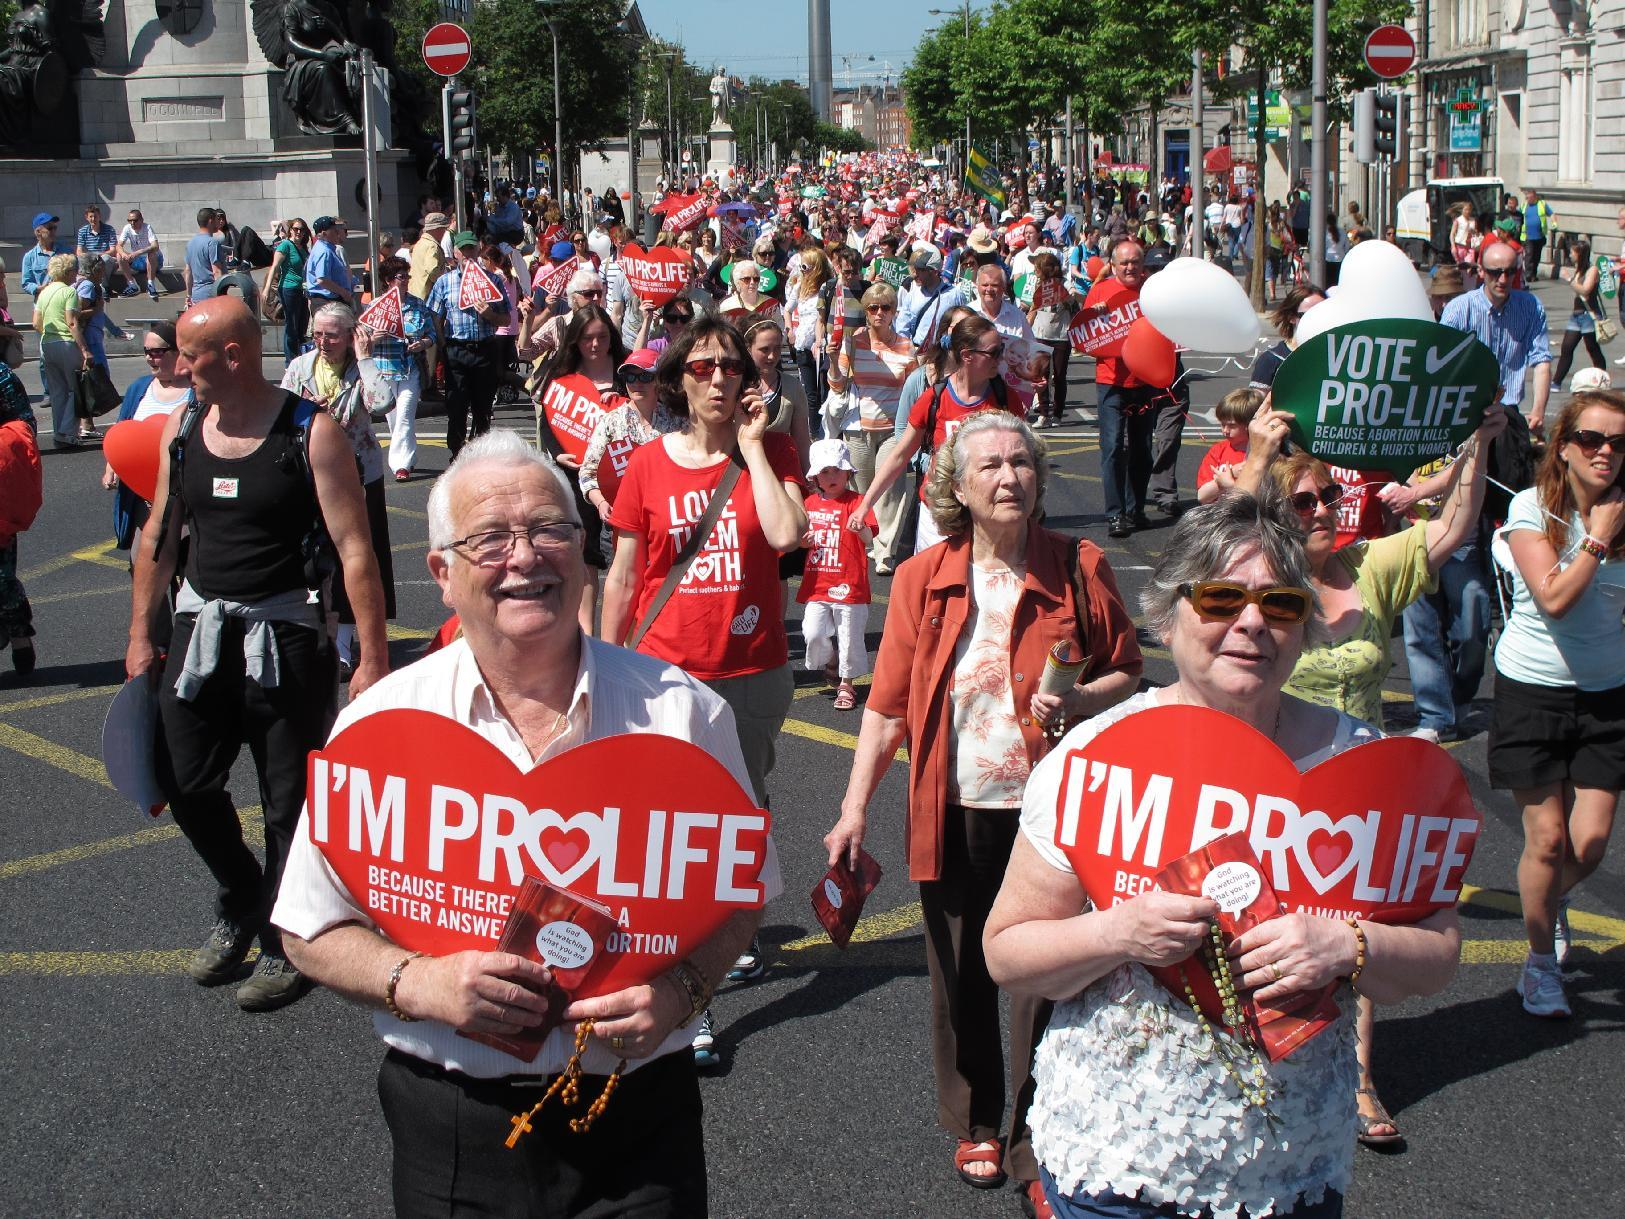 Irish face new abortion row over brain-dead woman